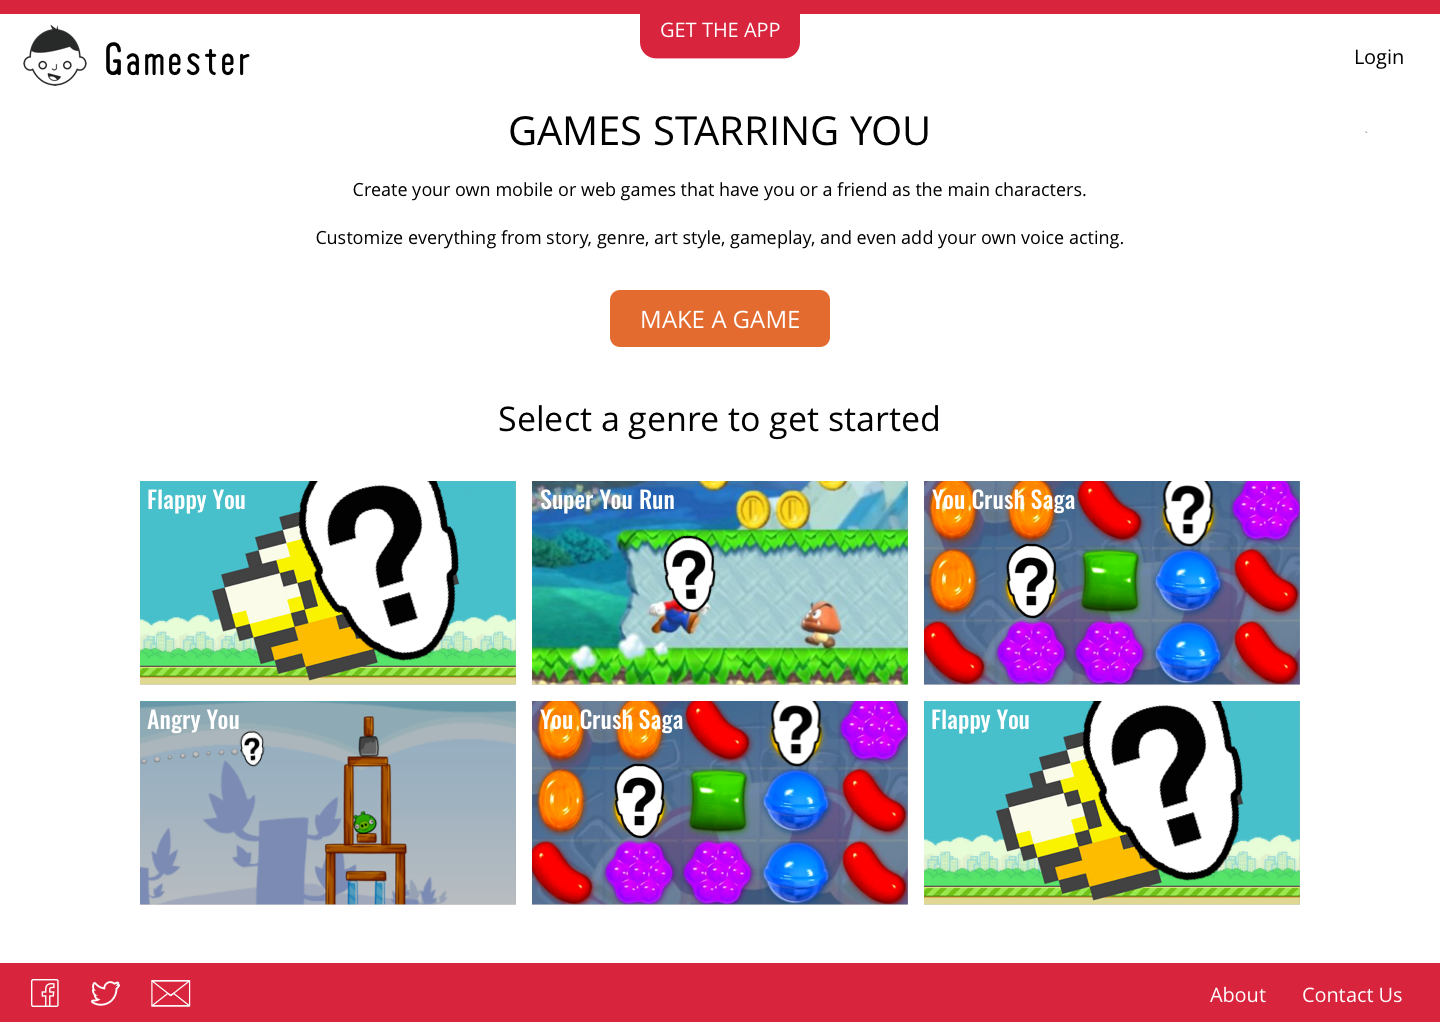 Redesigned Gamester Website